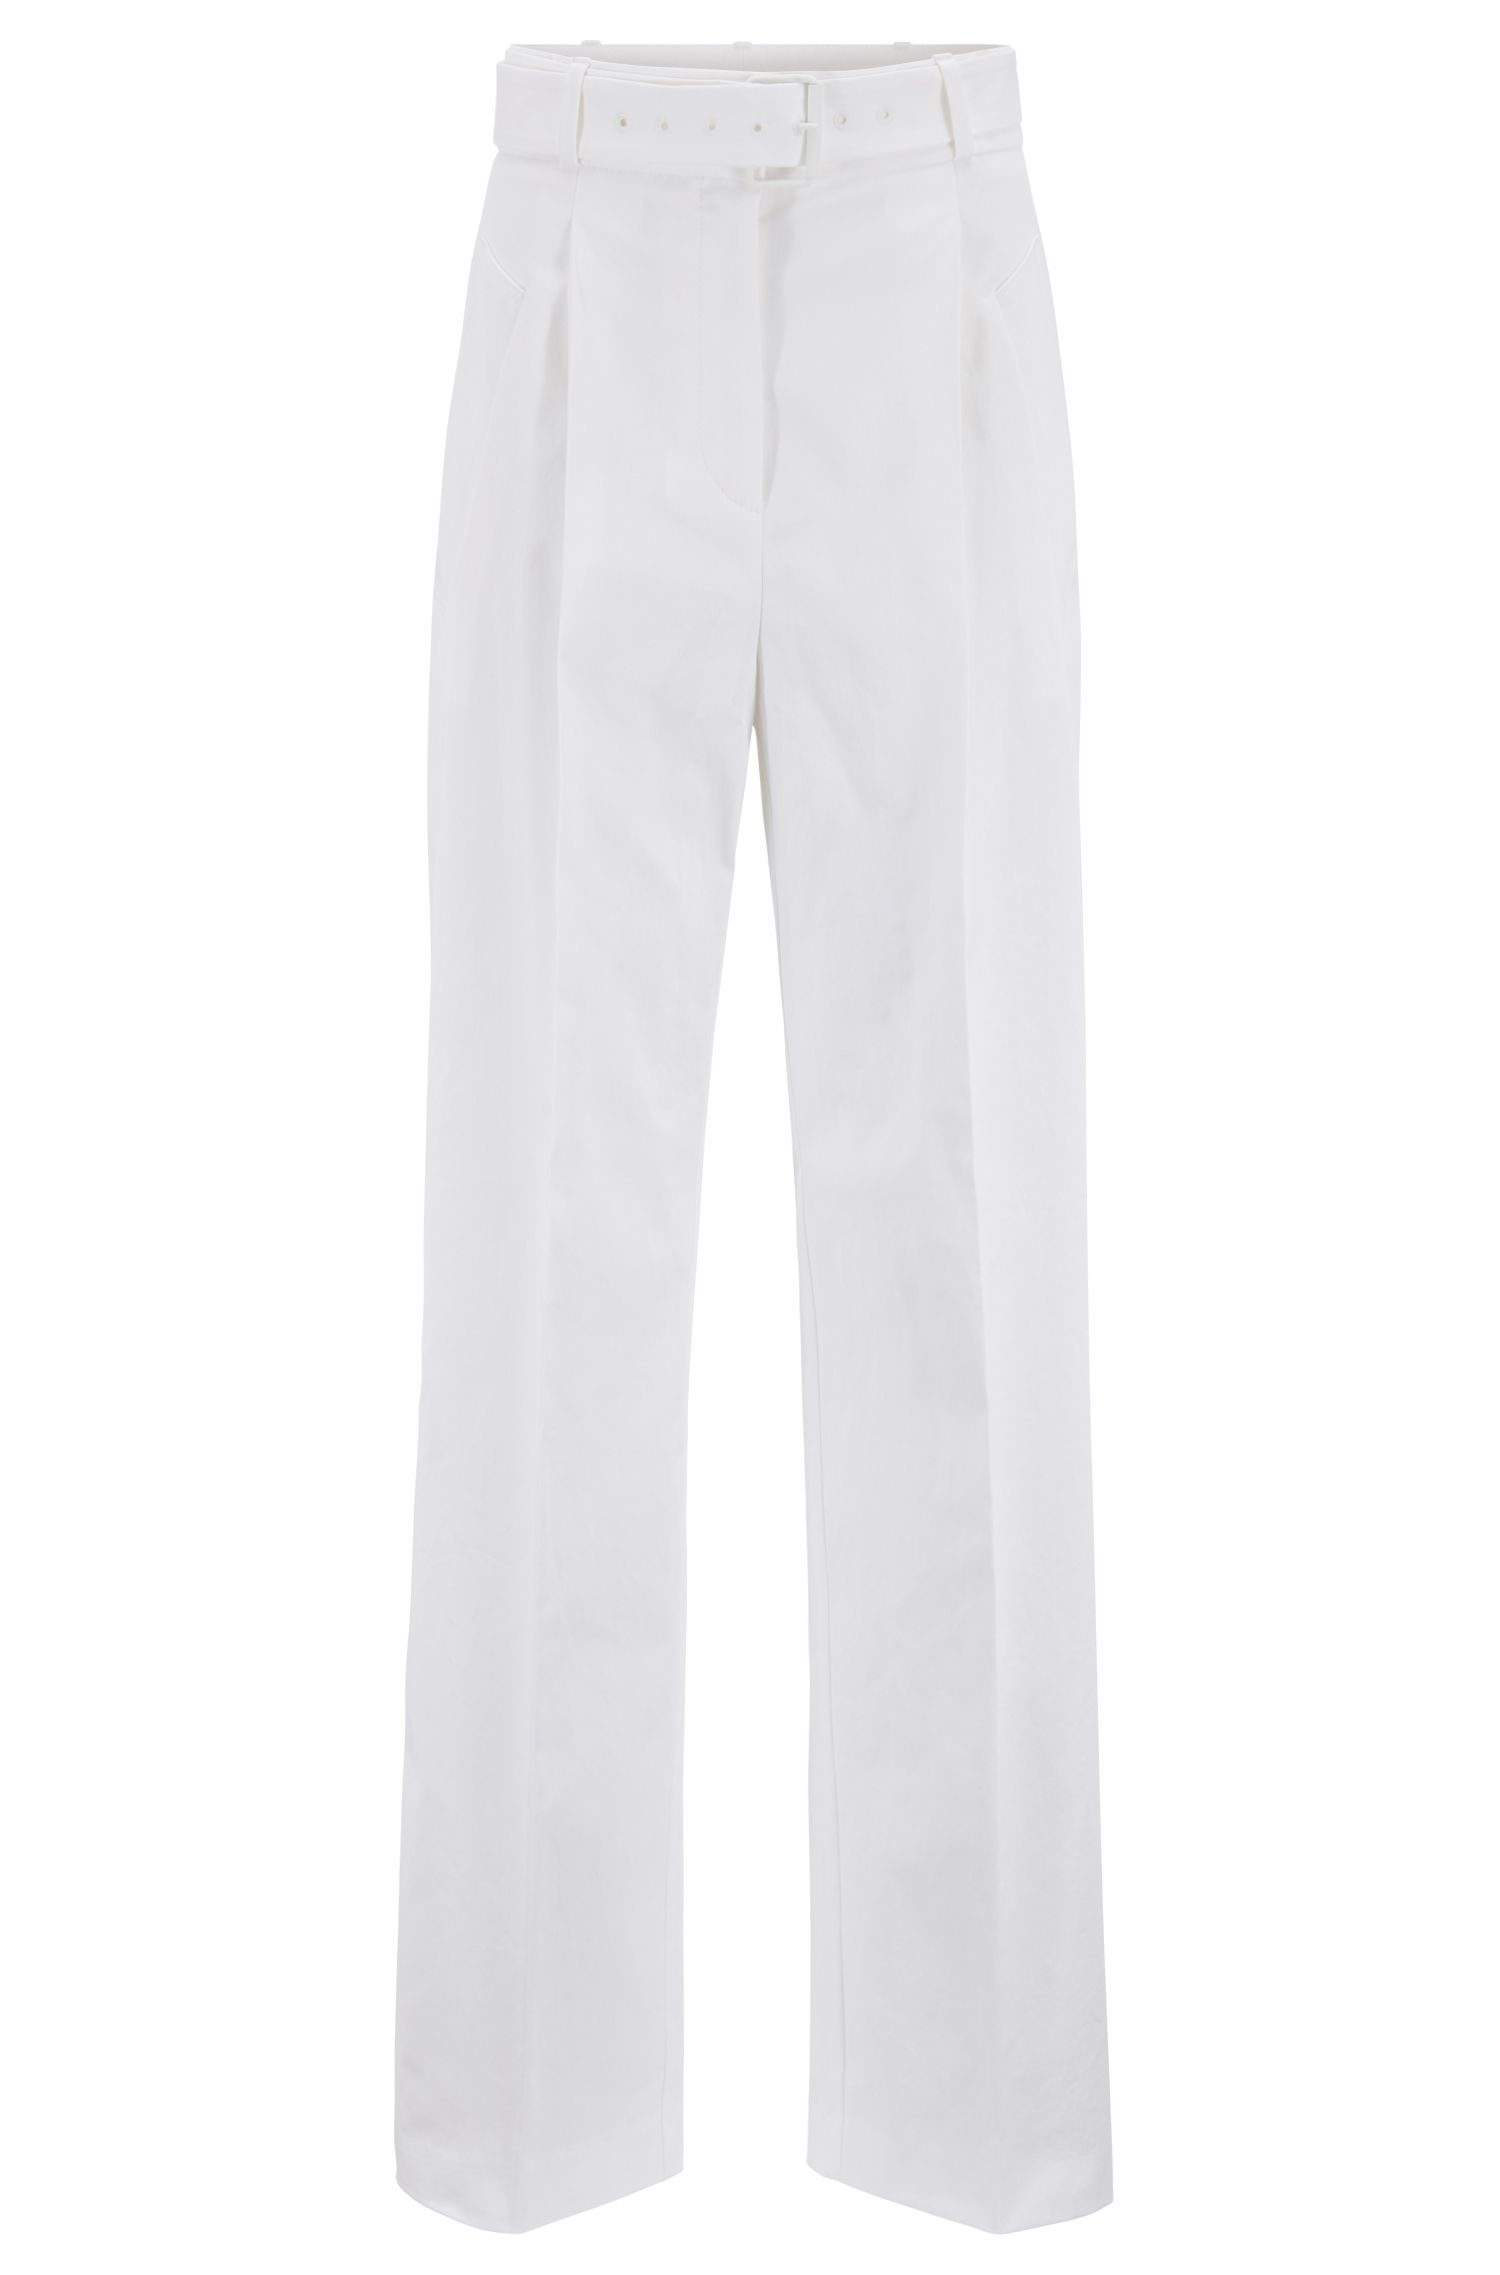 Belted wide-leg trousers in Portuguese stretch cotton, White